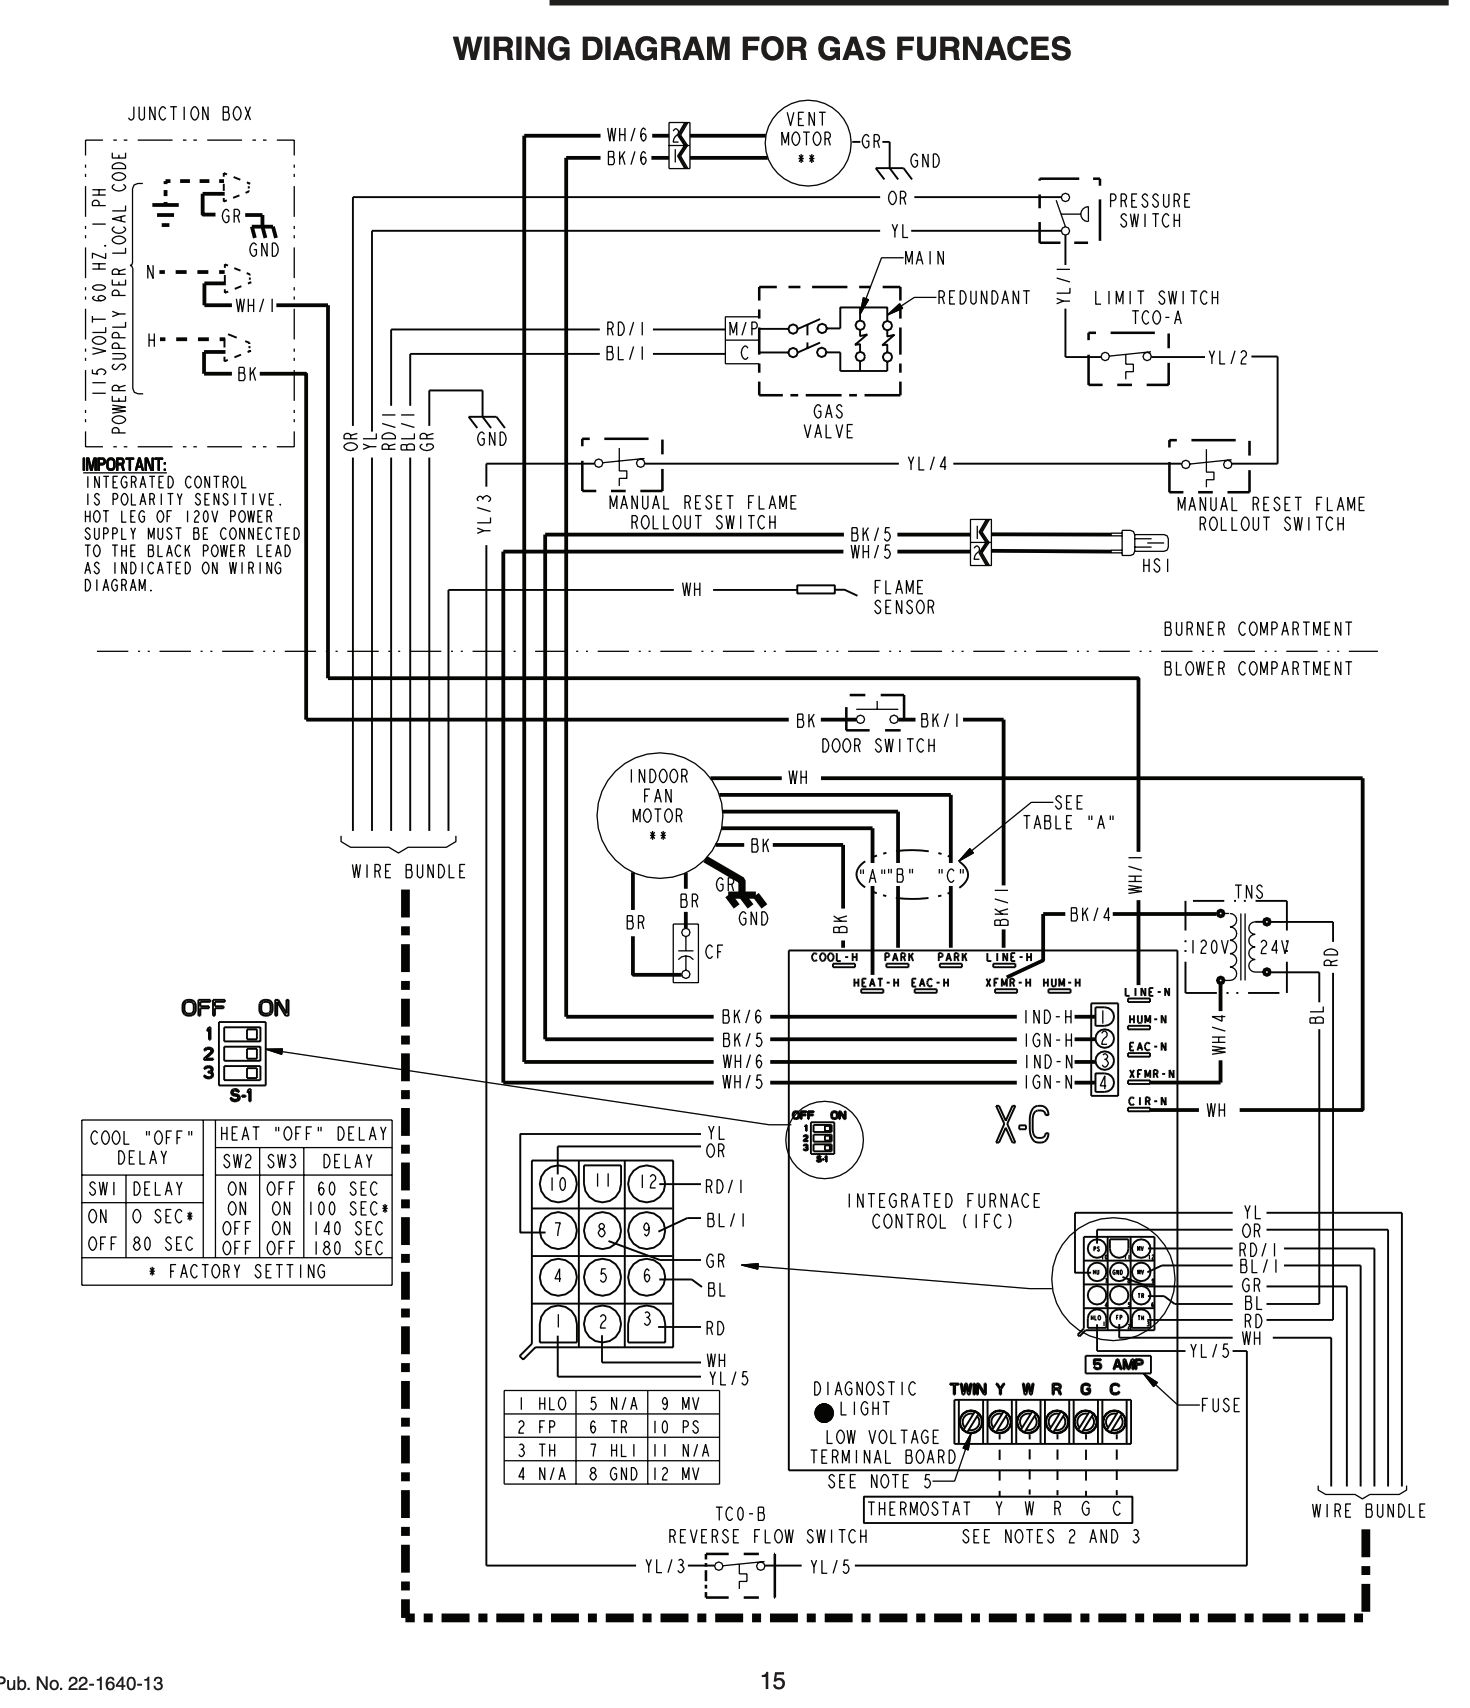 hight resolution of fenwal ke554695 ignition module wiring diagram wiring diagram paper fenwal ignition module wiring diagram hvac